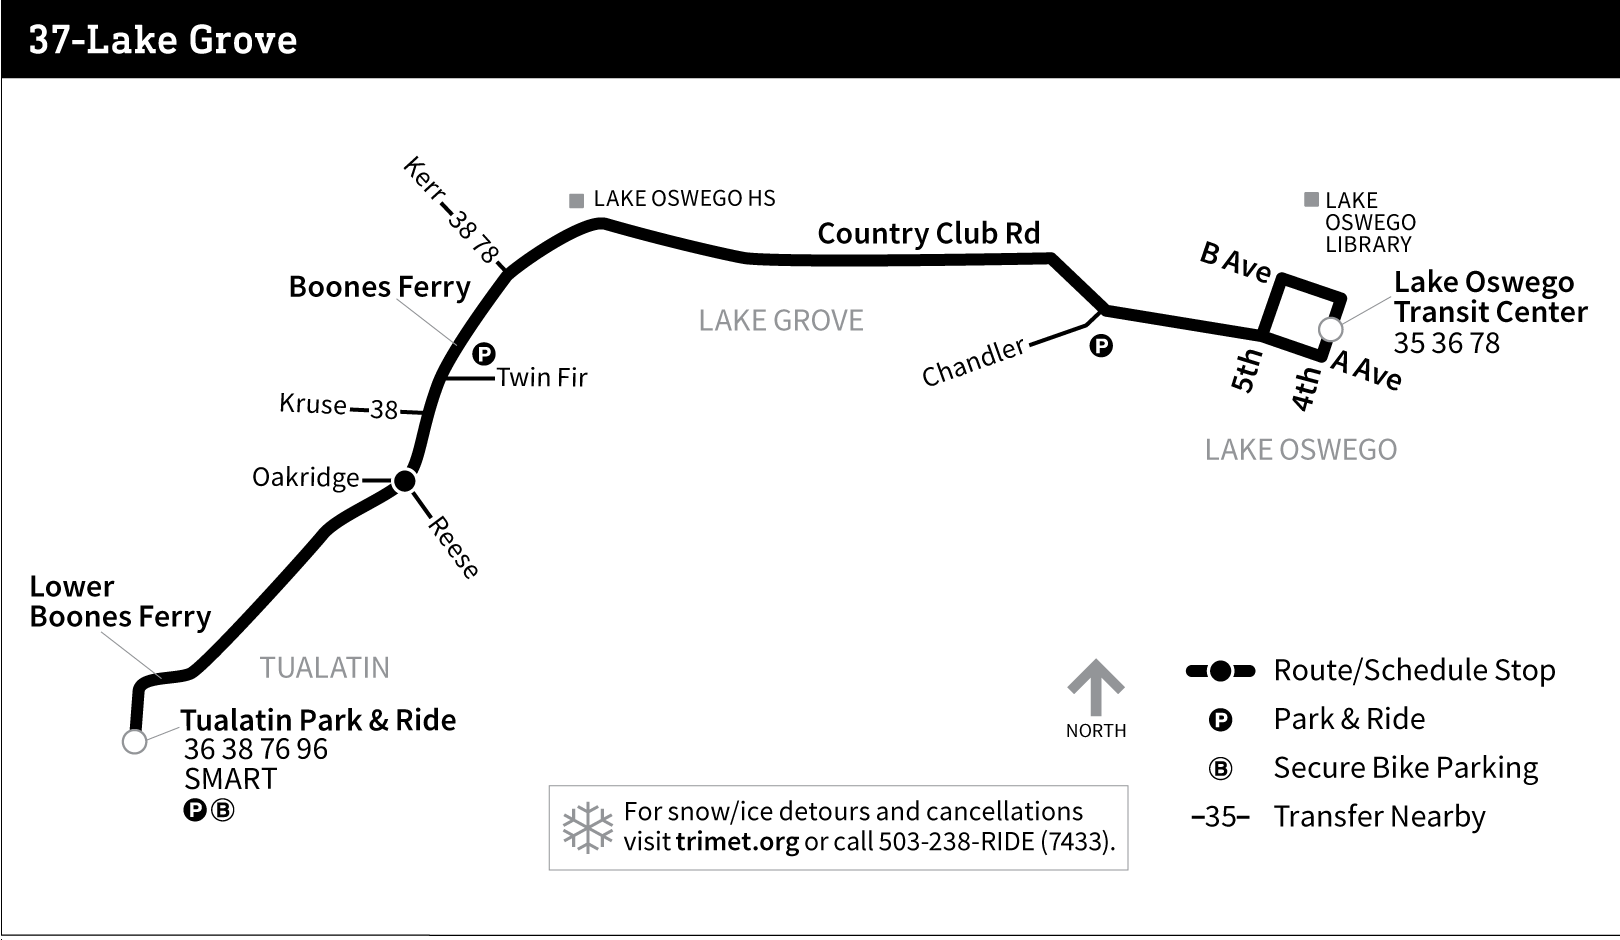 Bus Service During Snowy/Icy Weather